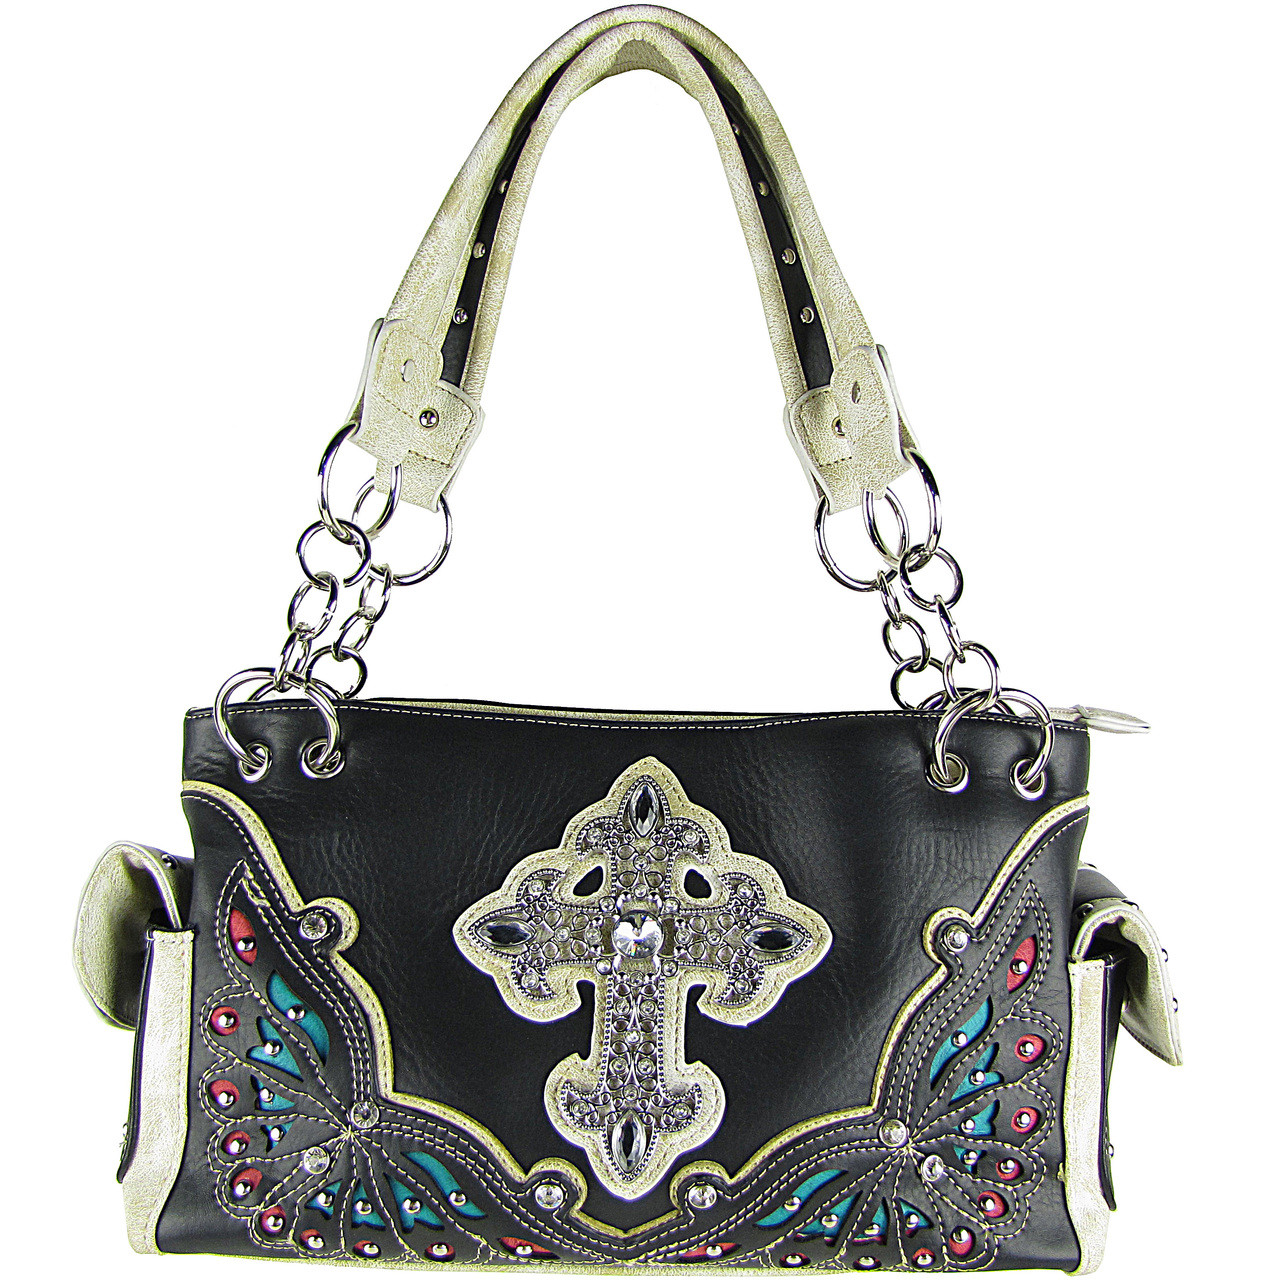 BLACK RHINESTONE CROSS LOOK SHOULDER HANDBAG HB1-70LCRBLK